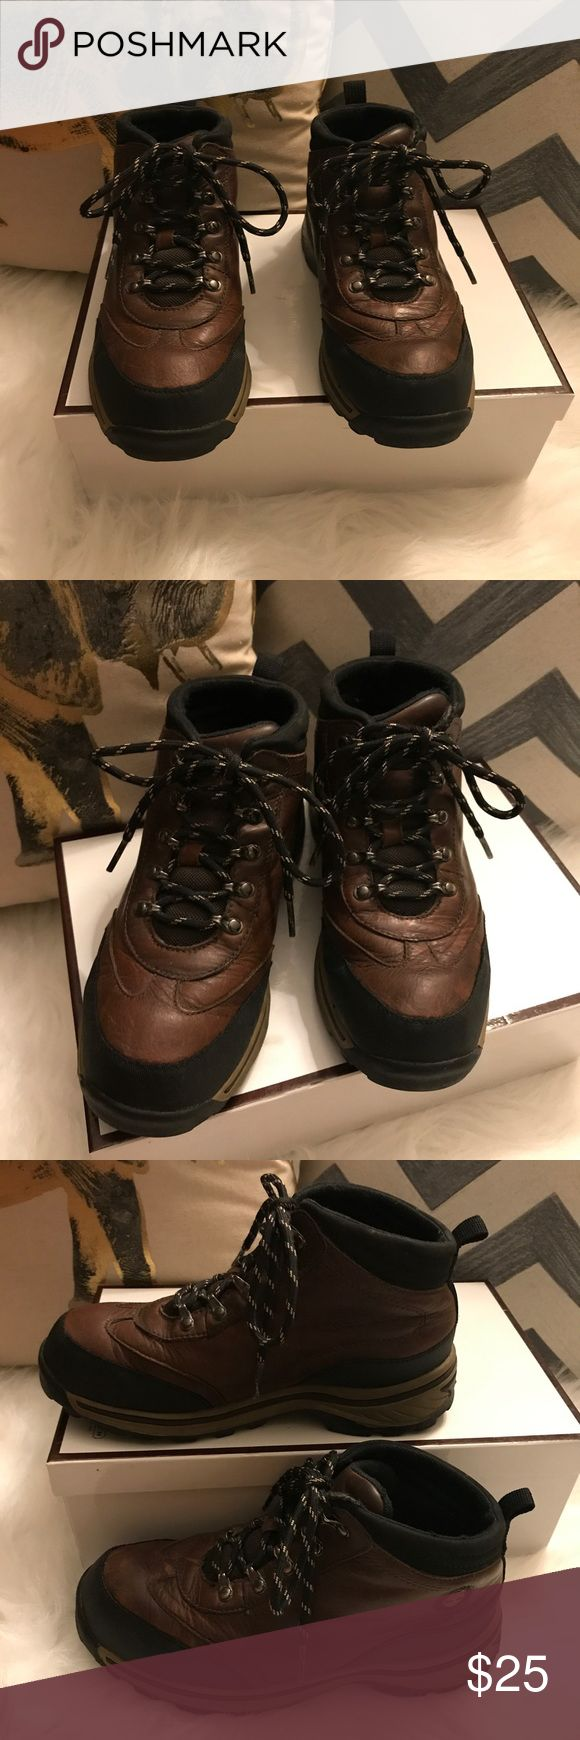 TIMBERLAND hiking boots for big kids. Size:3 TIMBERLAND hiking boots for big kids. Size:3. Good used condition with some minor creasing. Timberland Shoes Boots